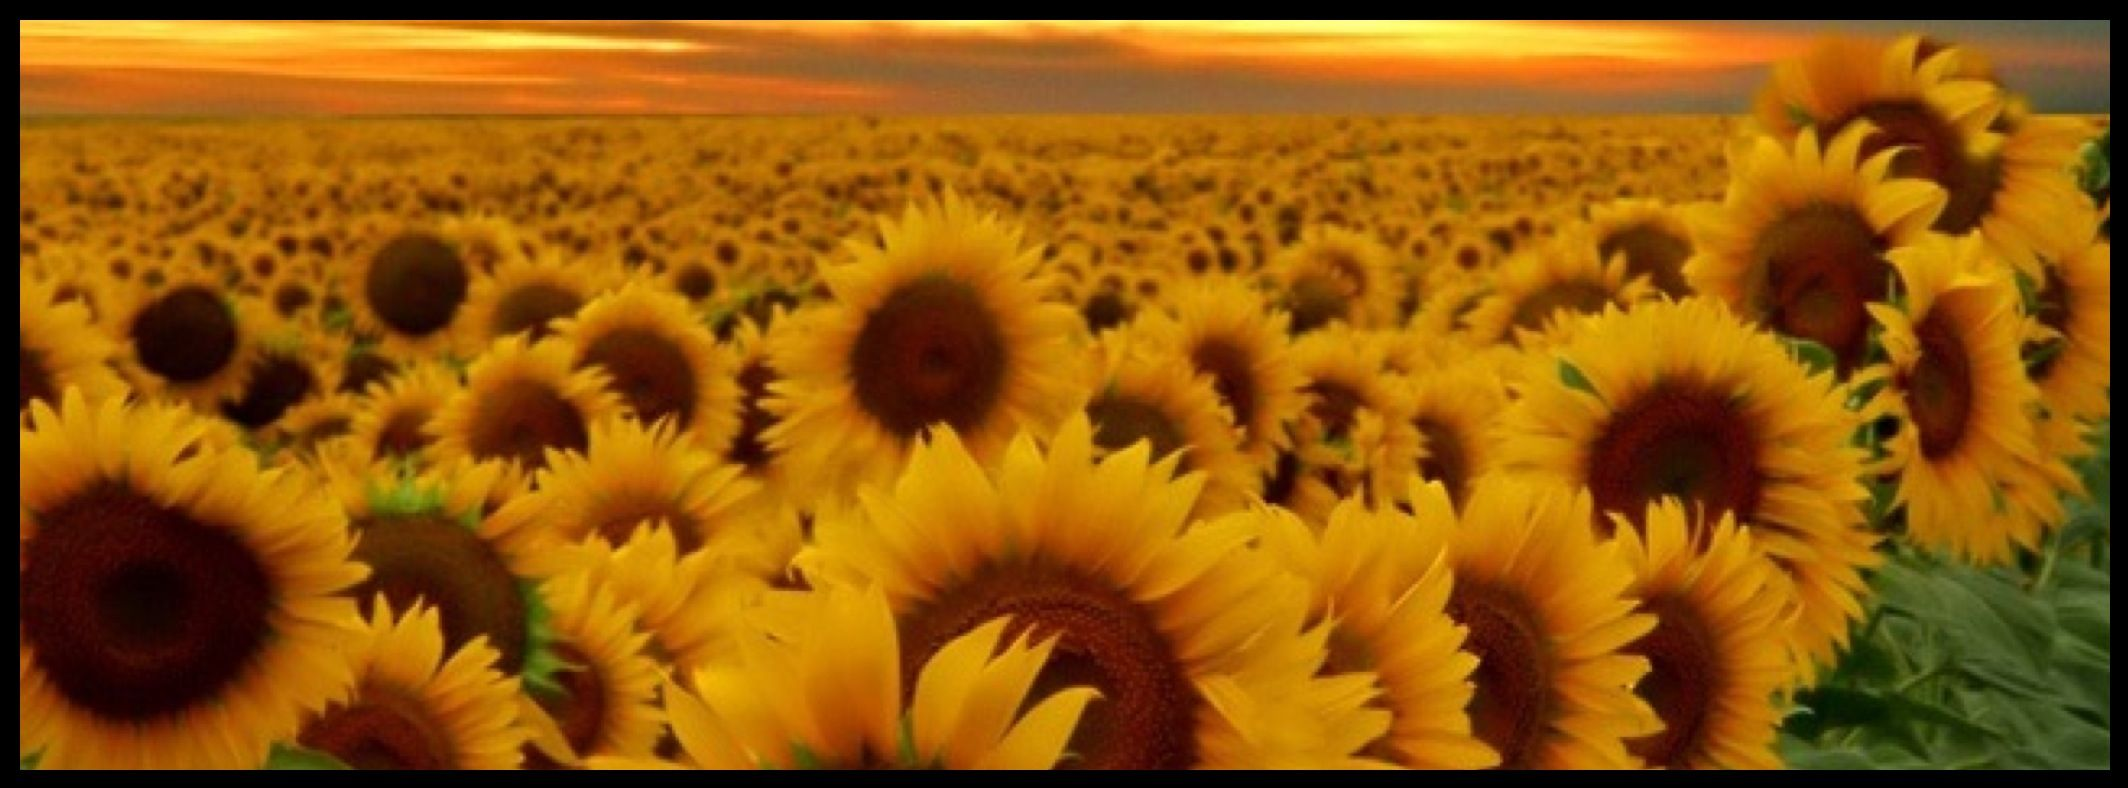 Sunflowers Facebook Cover Photo Facebook Cover Photos Twitter Cover Photo Cover Pics